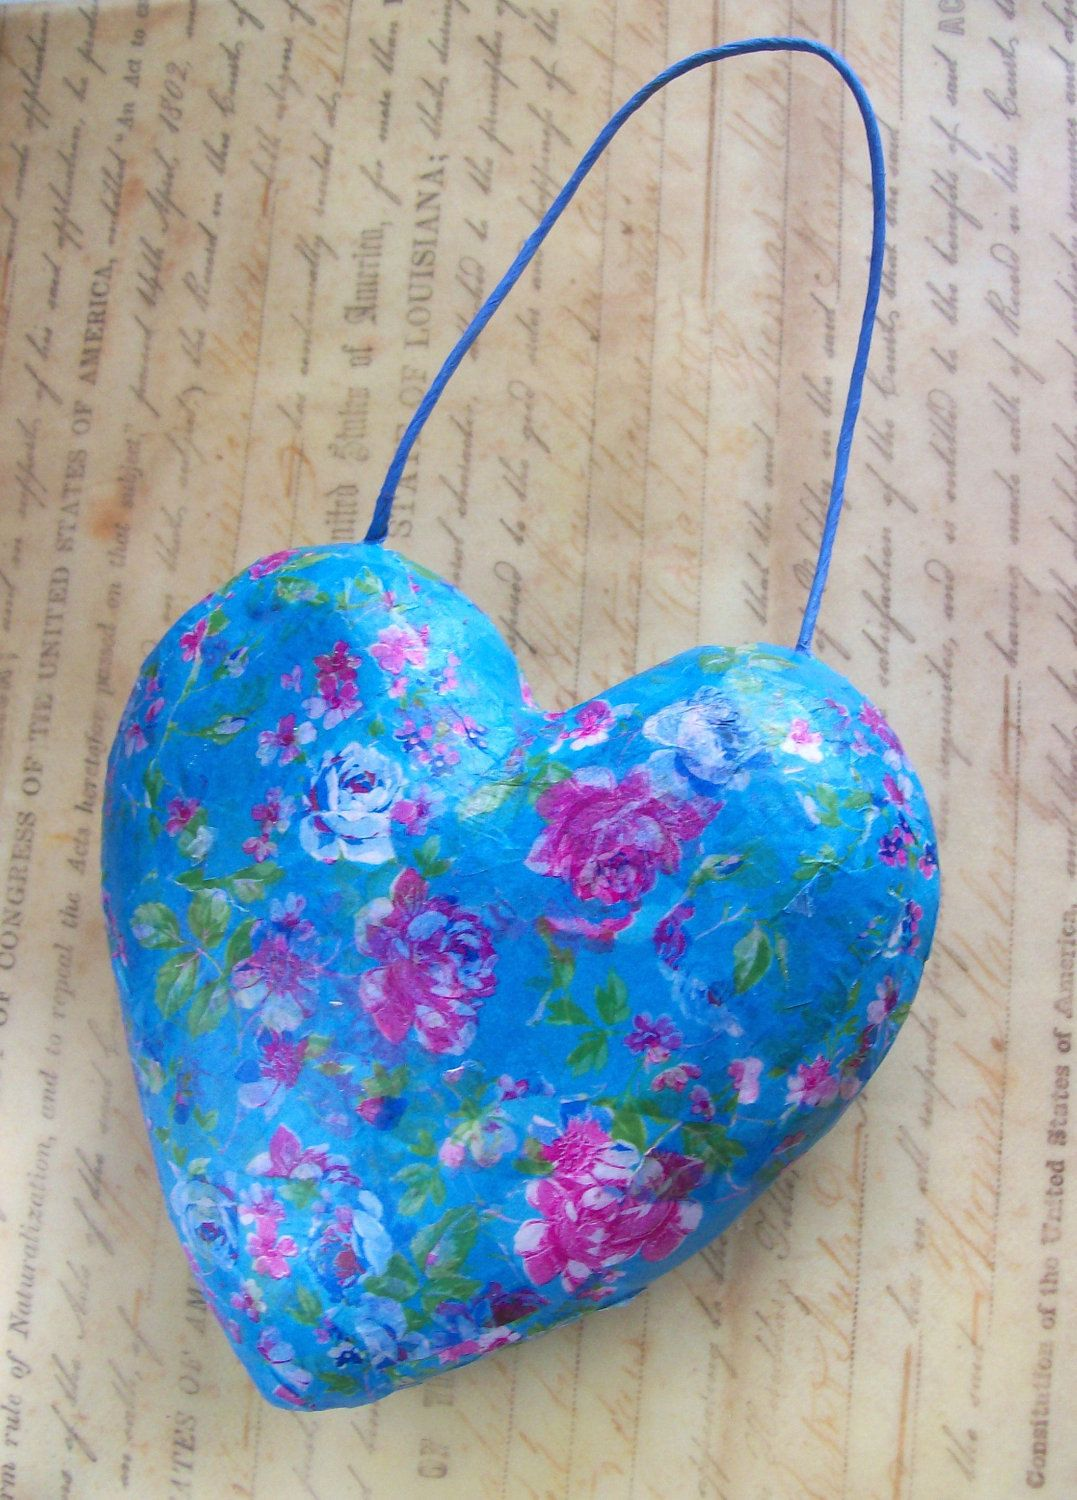 Paper Mache Heart With Images Shabby Chic Paper Heart